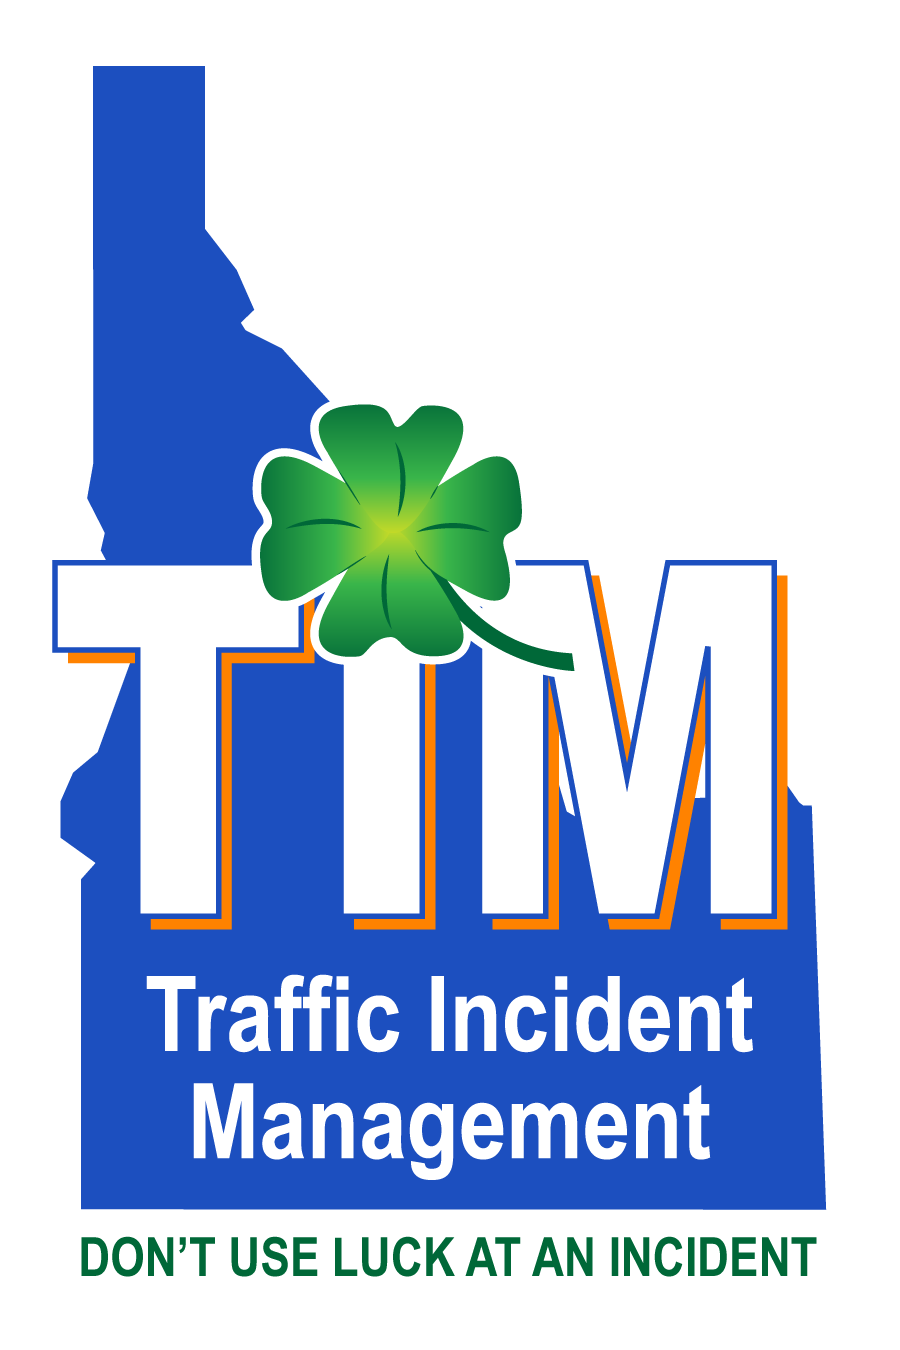 Traffic Incident Management Moscow ID